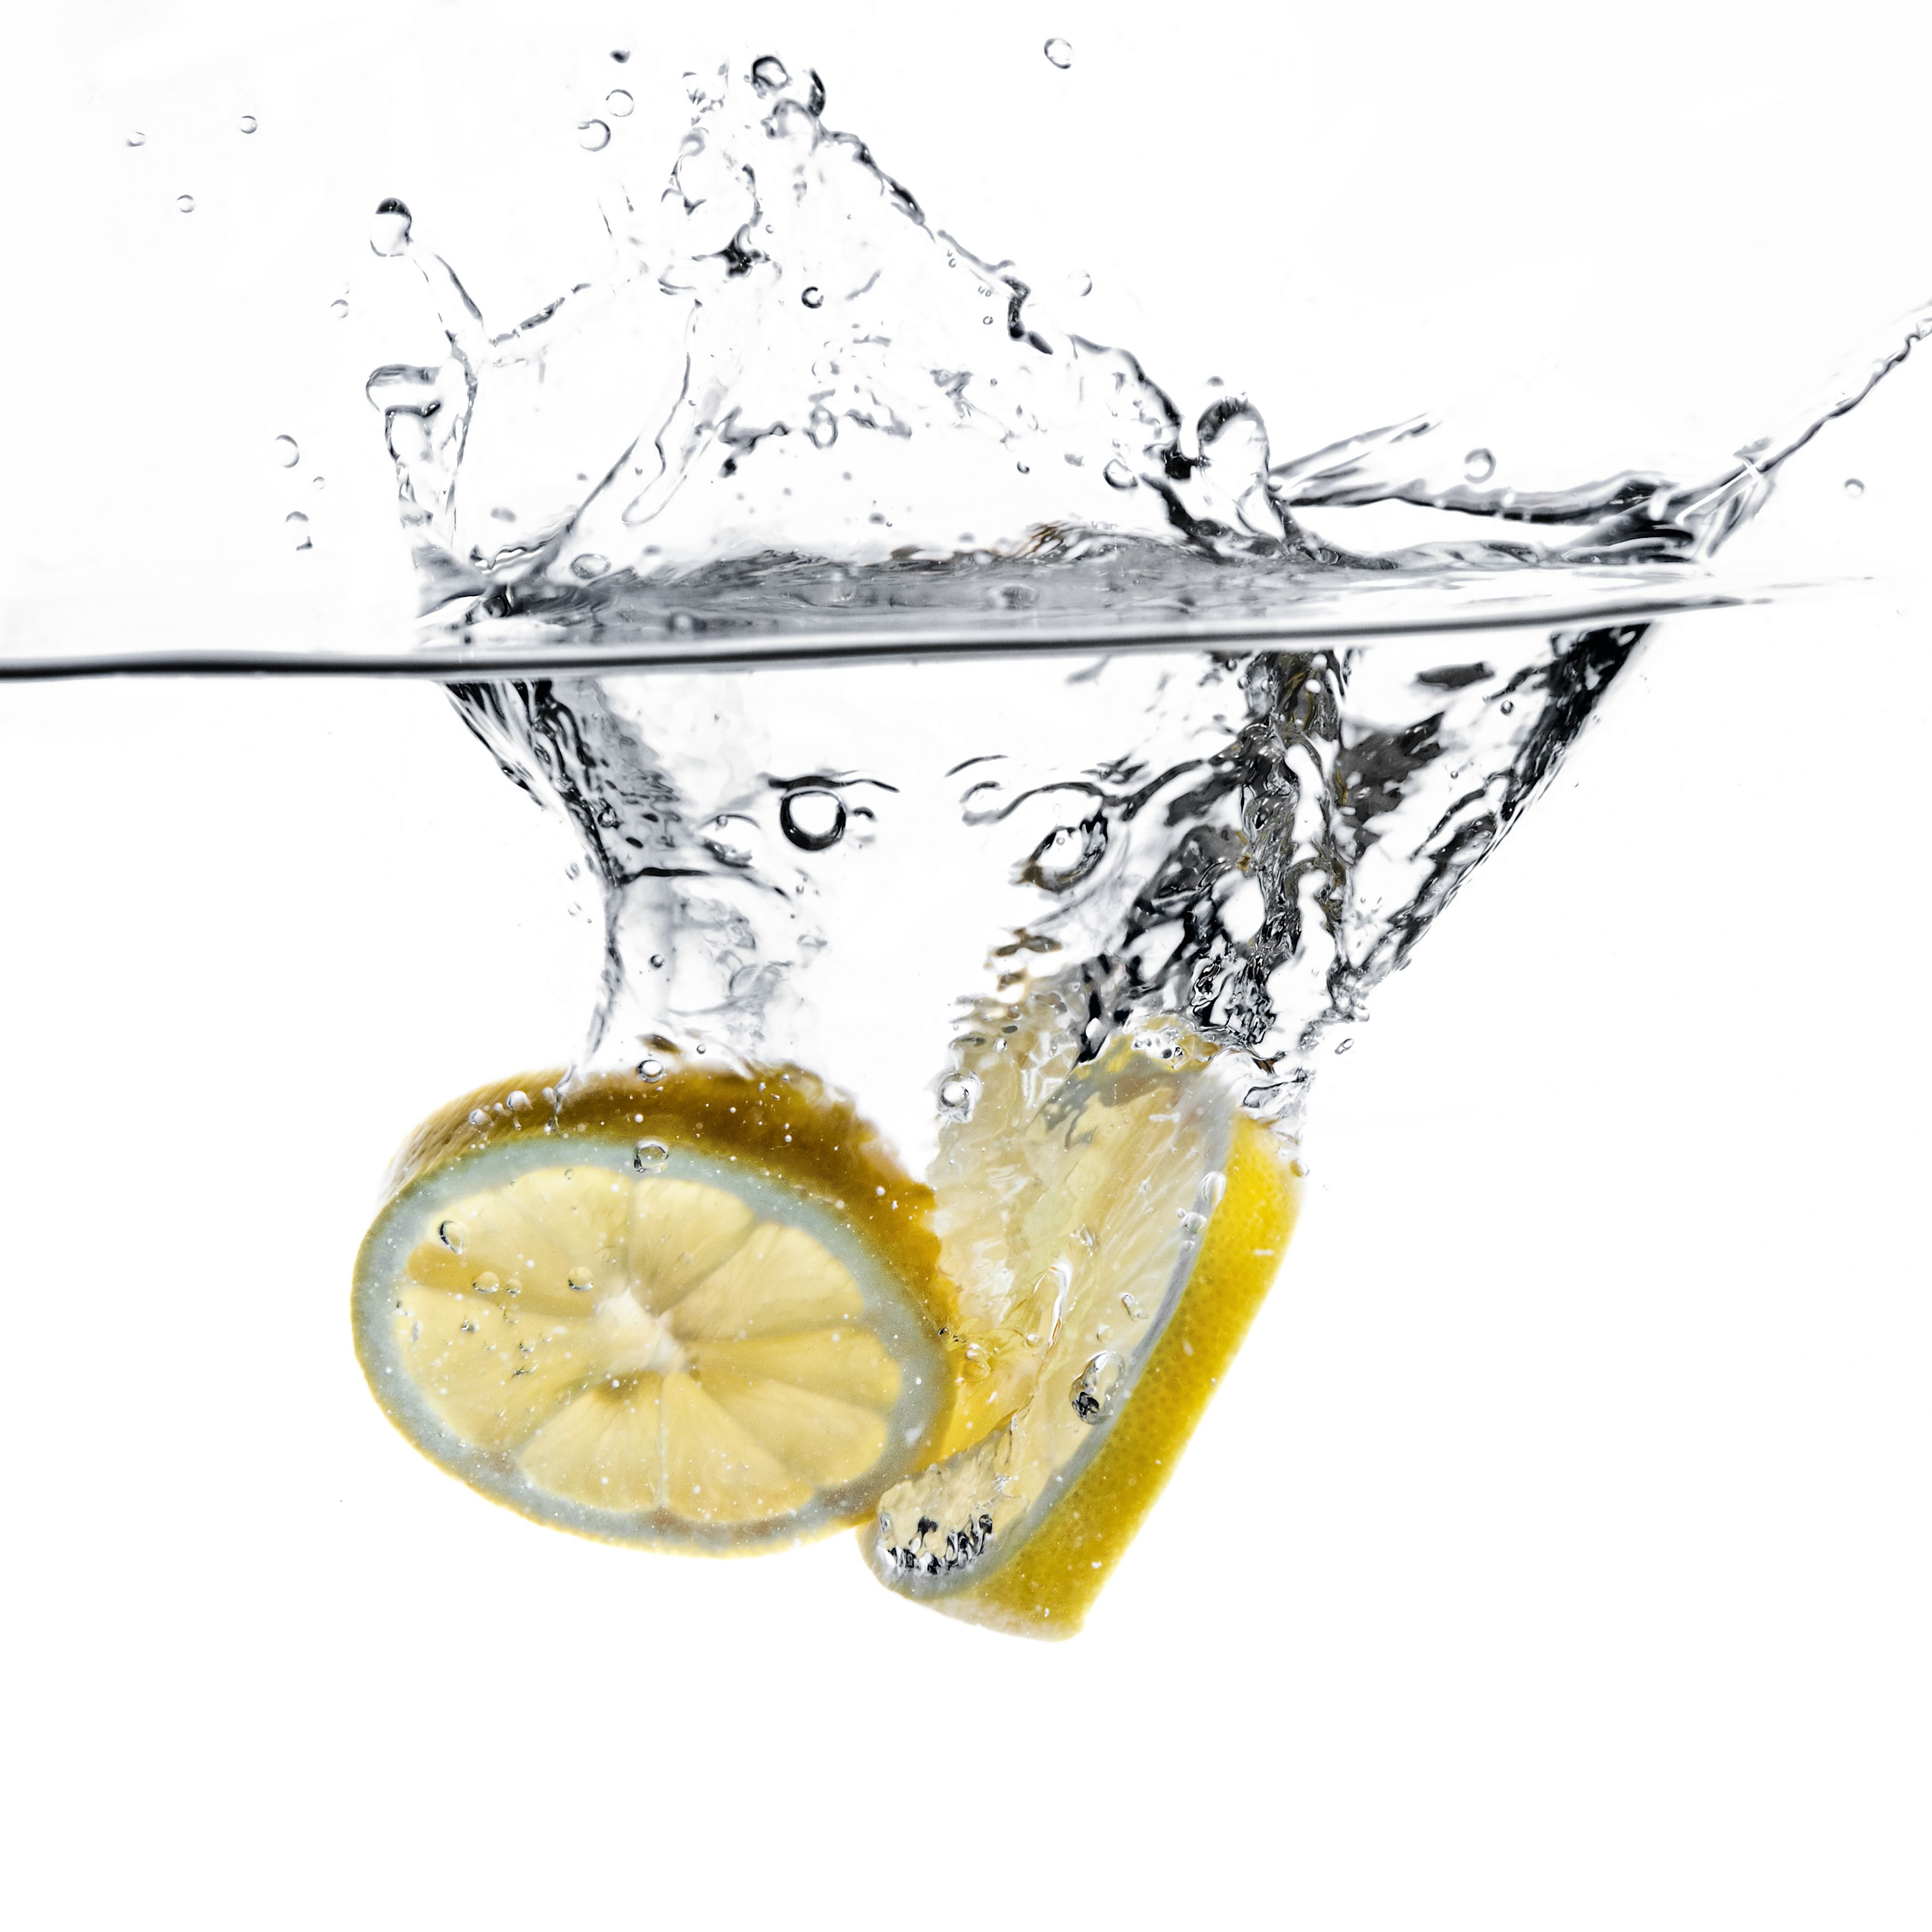 Can Drinking Lemon Water Help You Lose Weight?